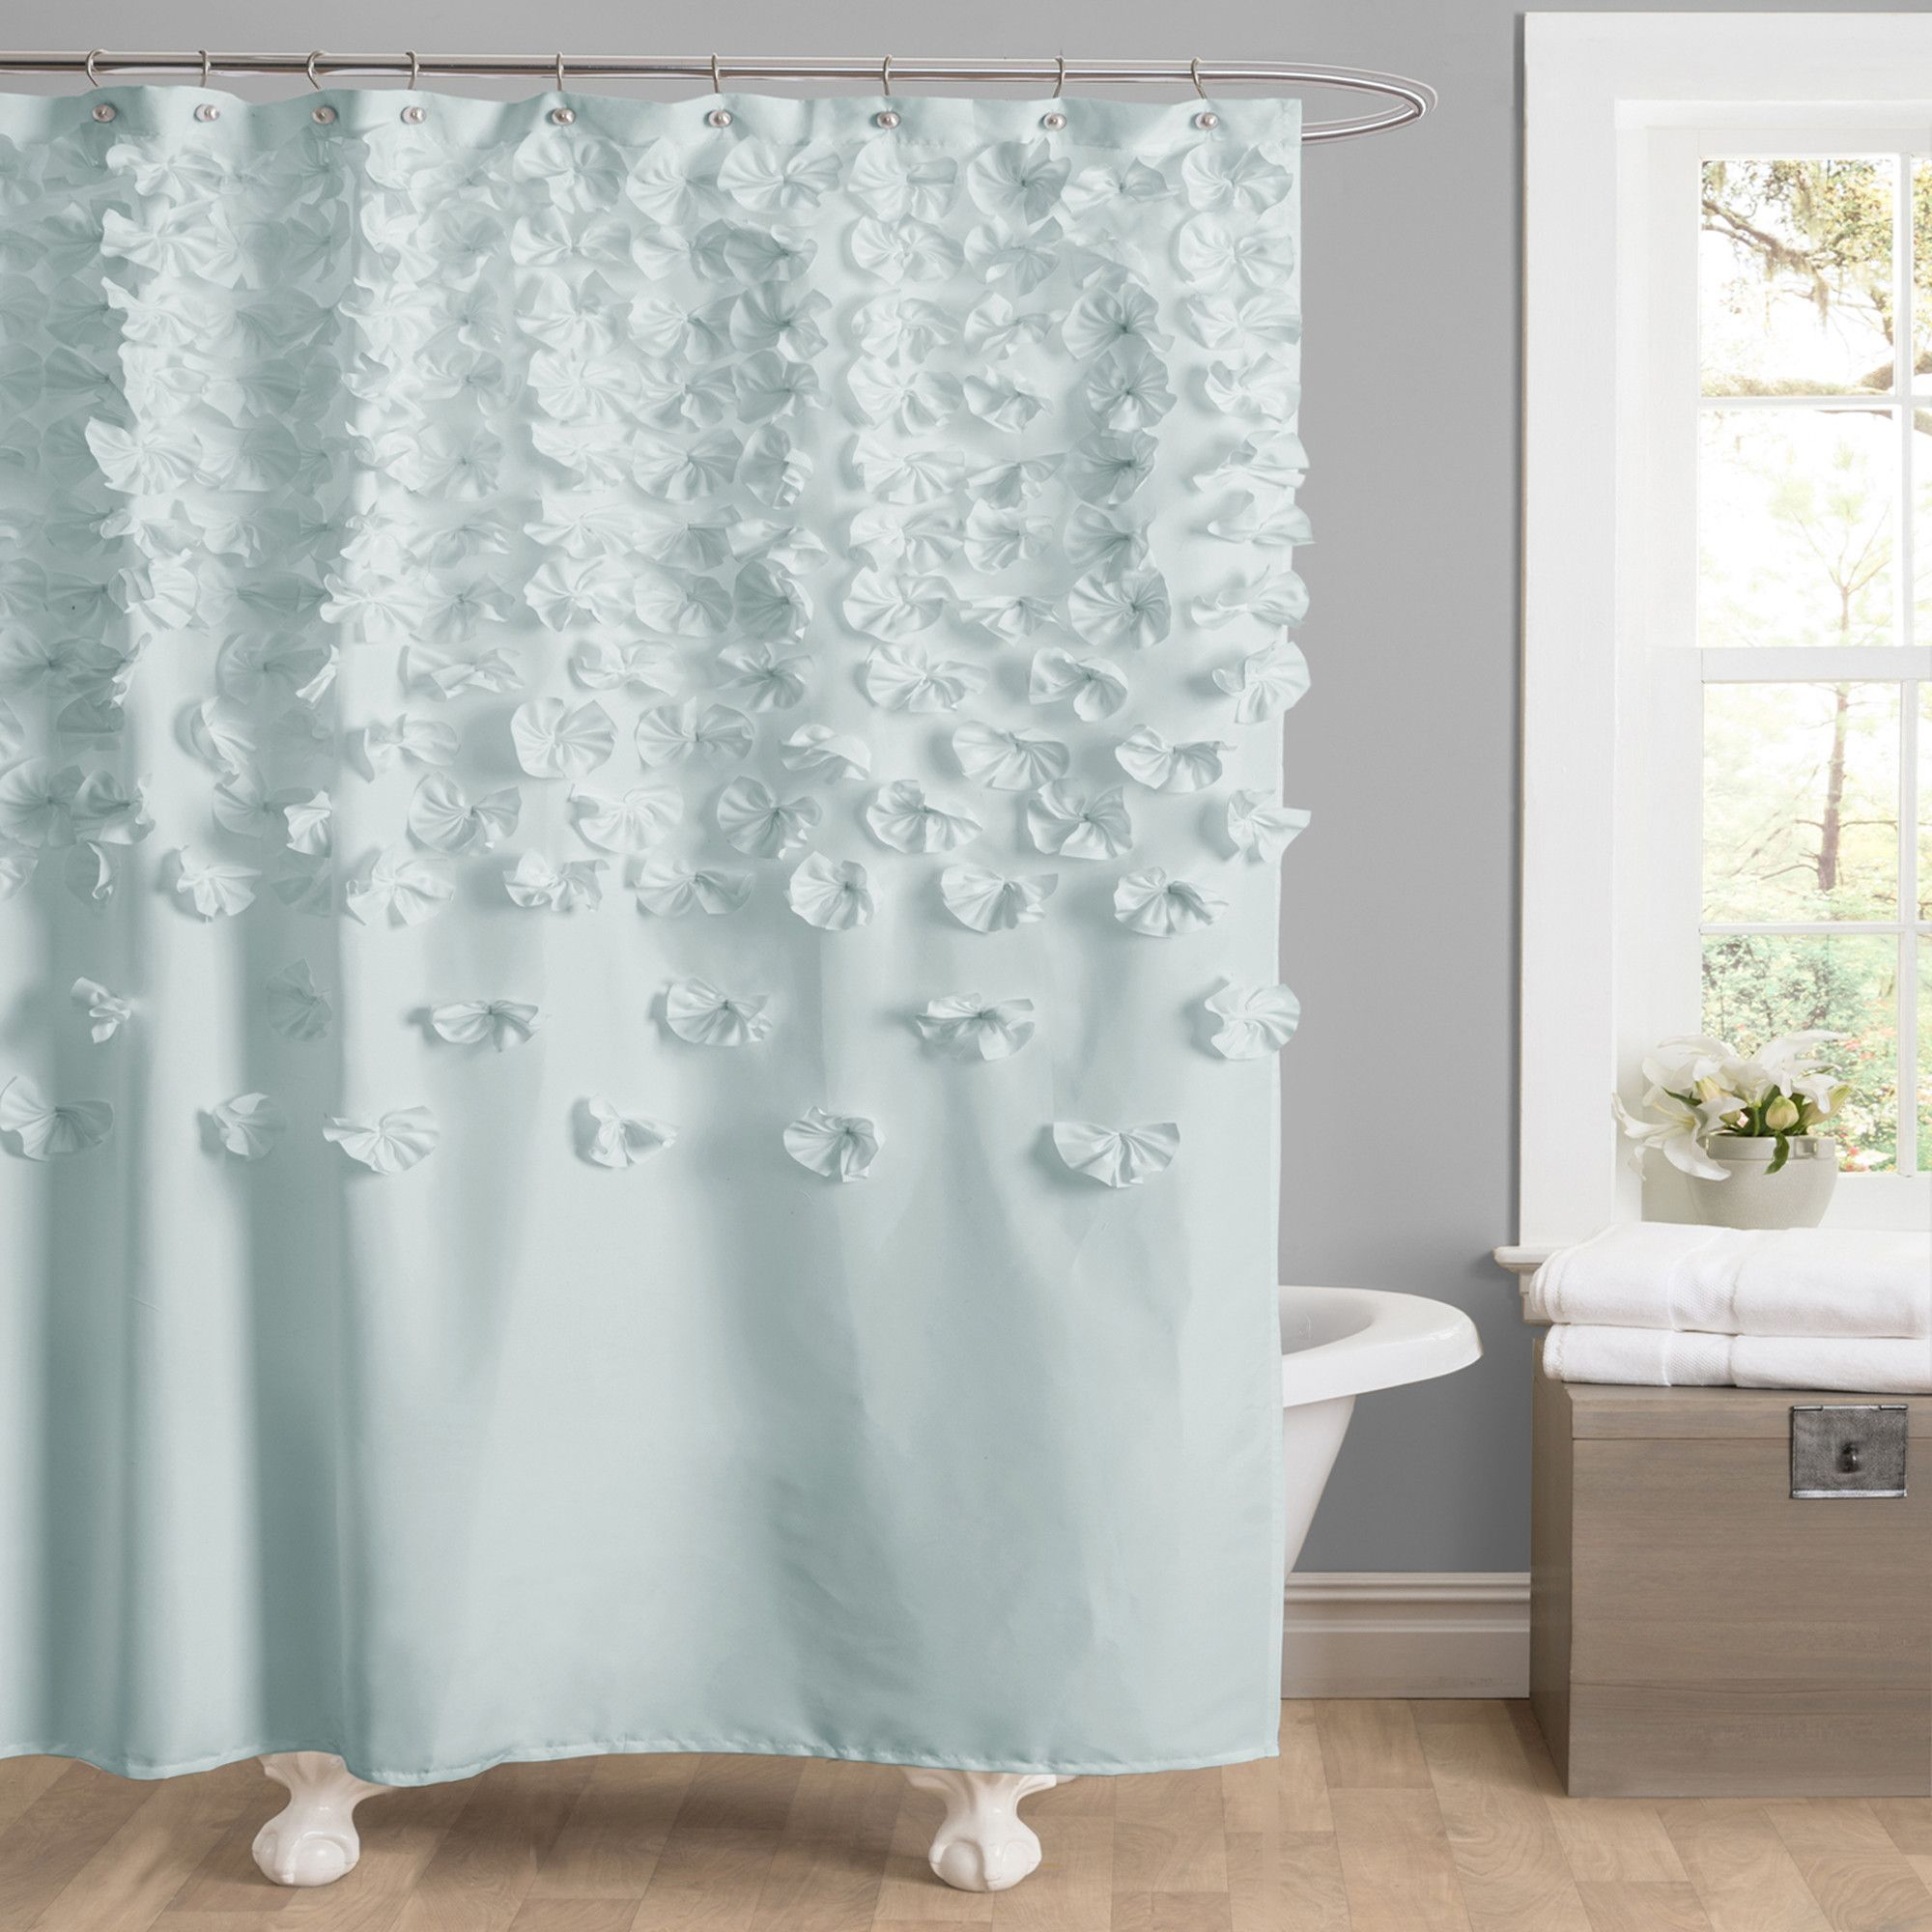 Lucia shower curtain products pinterest products